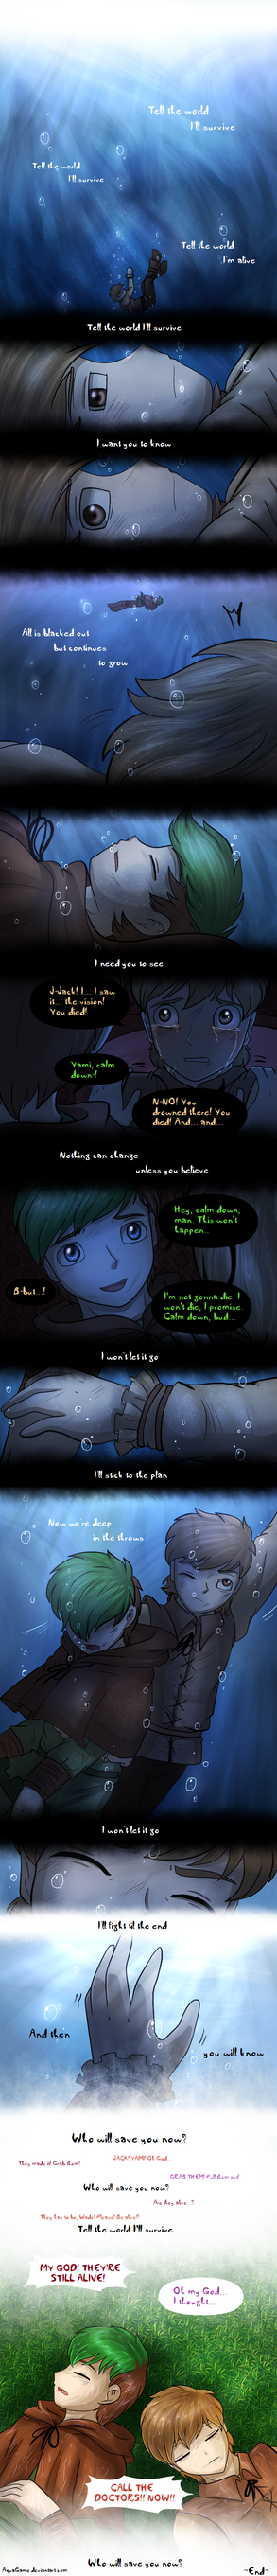 .: US comic - Who will save you now?:. by AquaGD